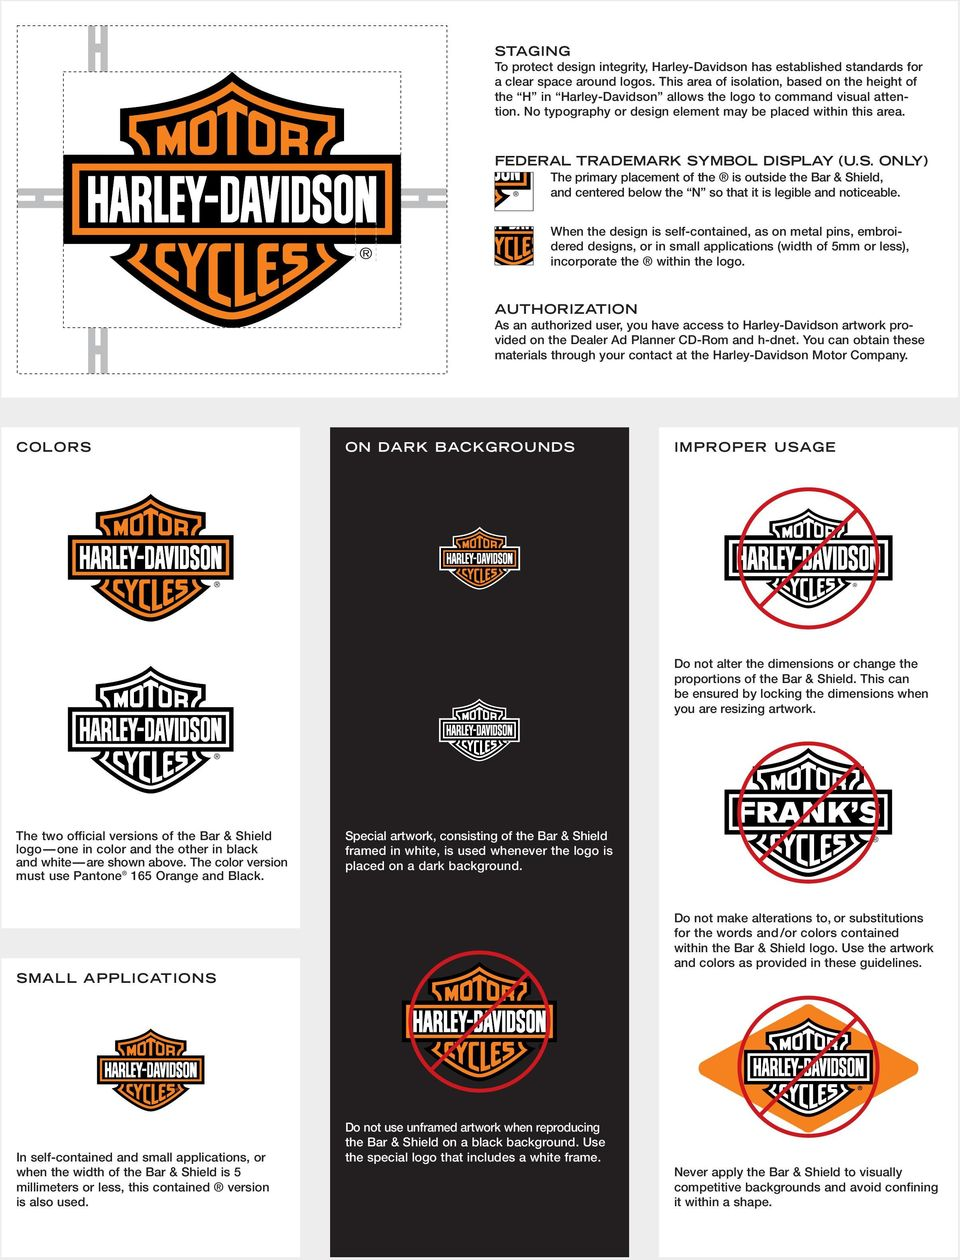 Harley Davidson Visual Identity And Trademark Guidelines Pdf